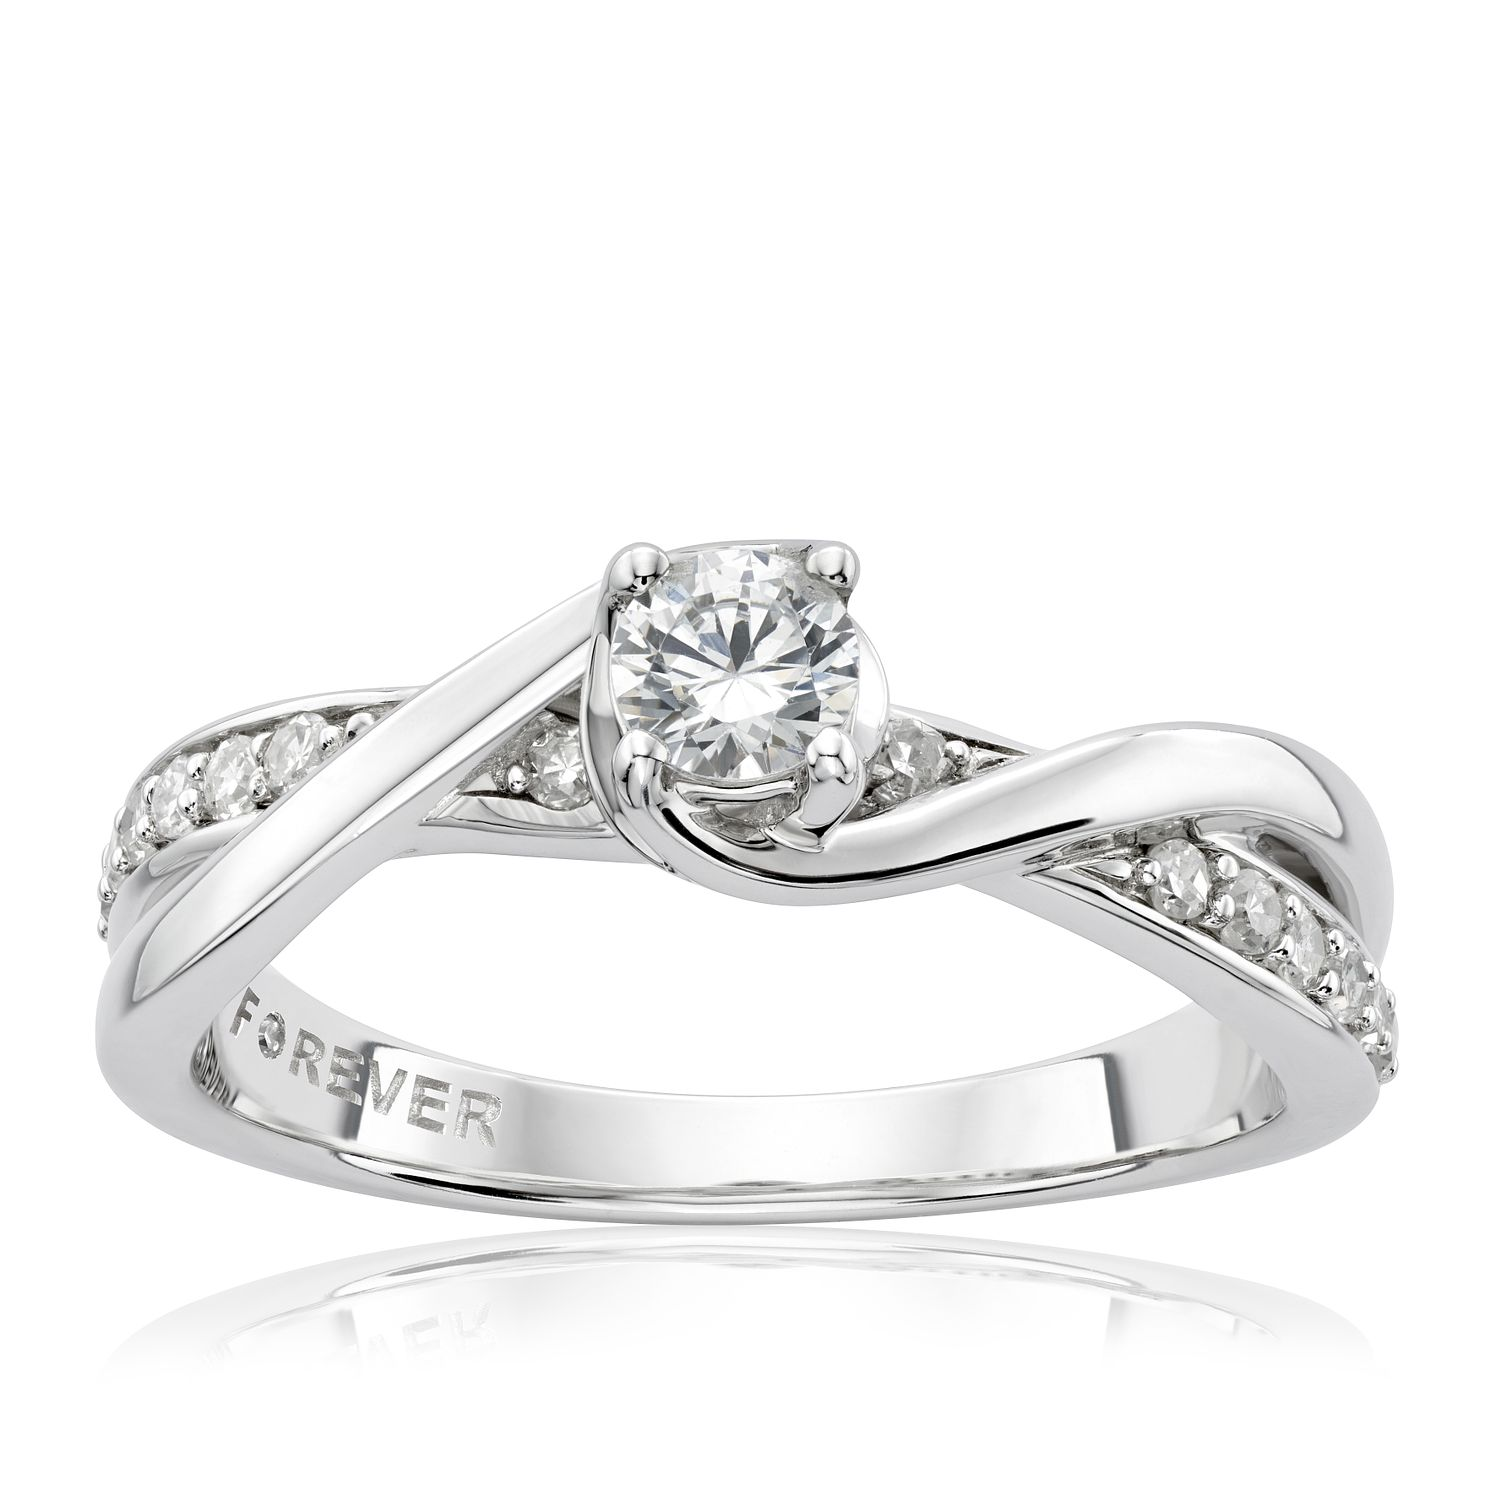 rings diamonds diamond with luxury dimond side product category princess online cut engagement natalie